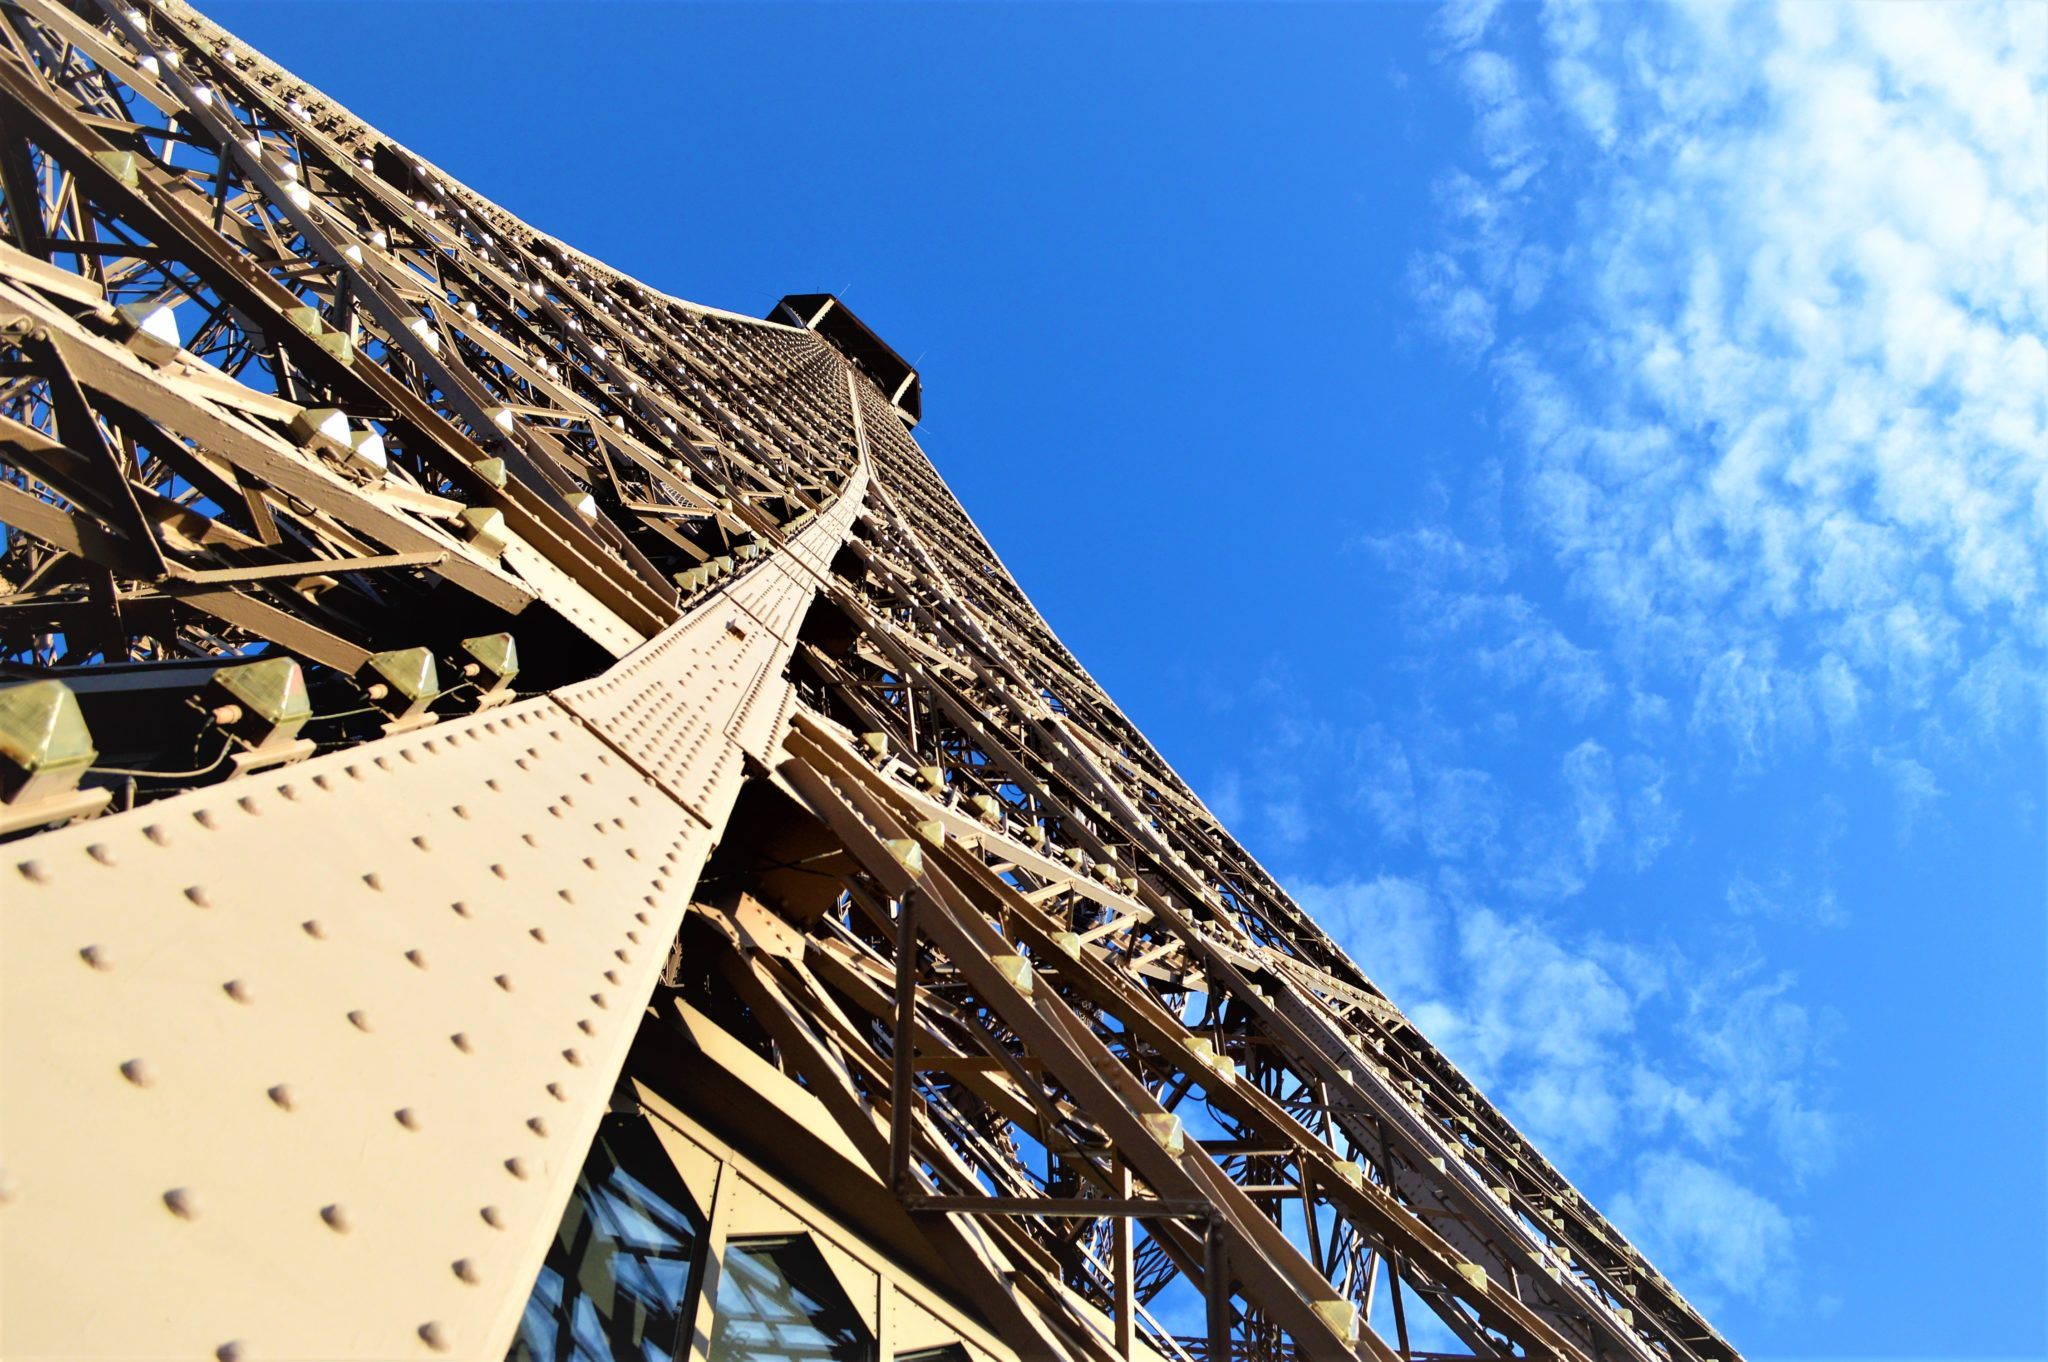 Looking up Eiffel Tower, Paris, France